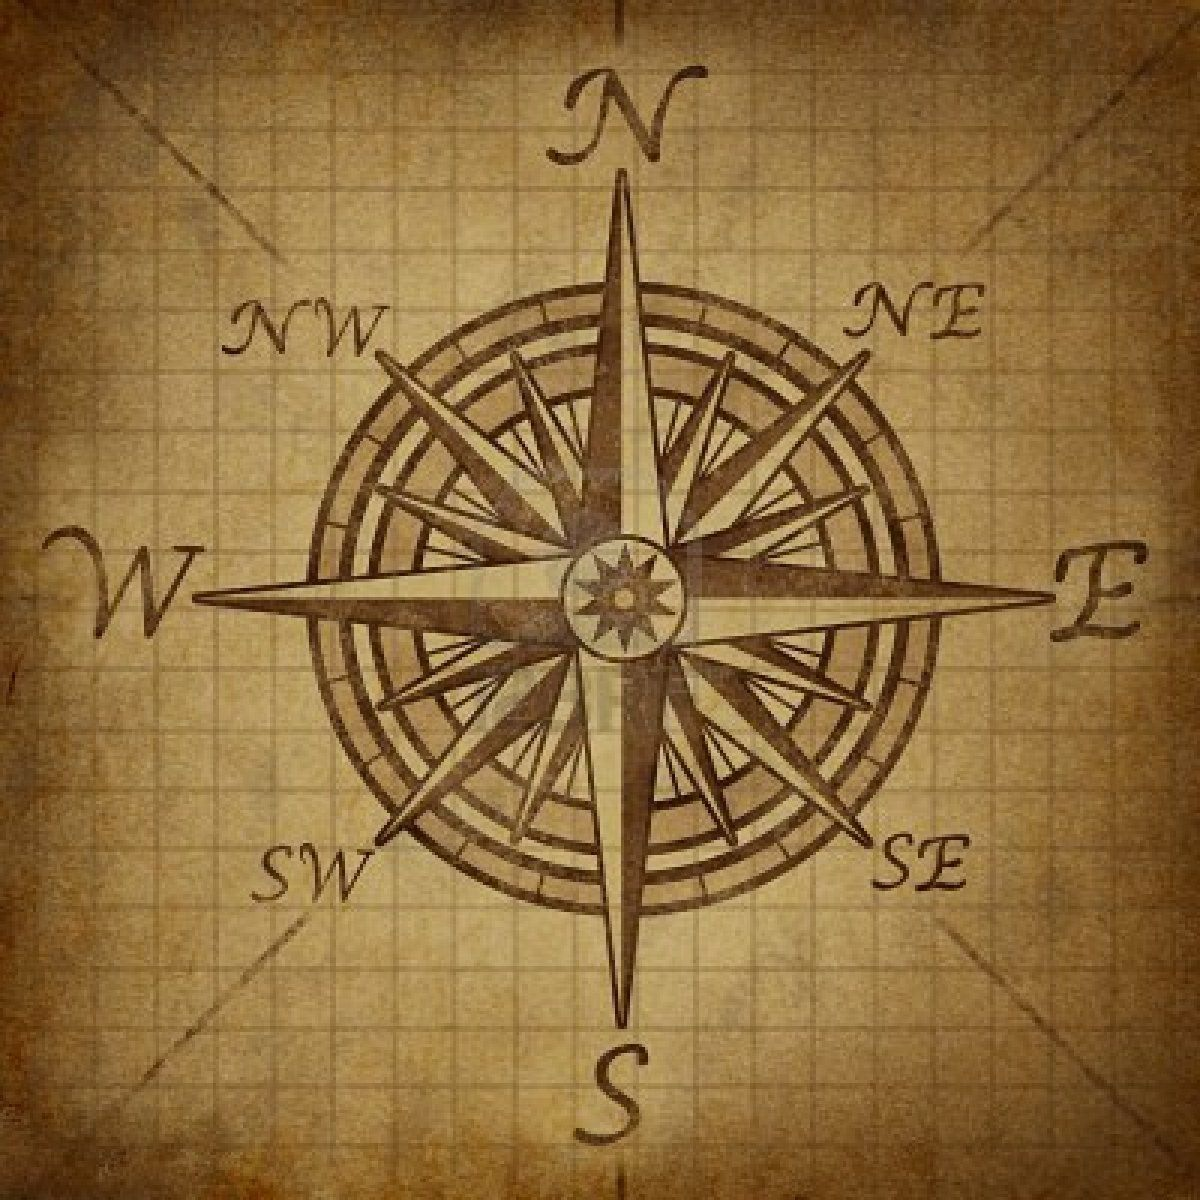 Compass Rose With Old Vintage Grunge Texture Representing A